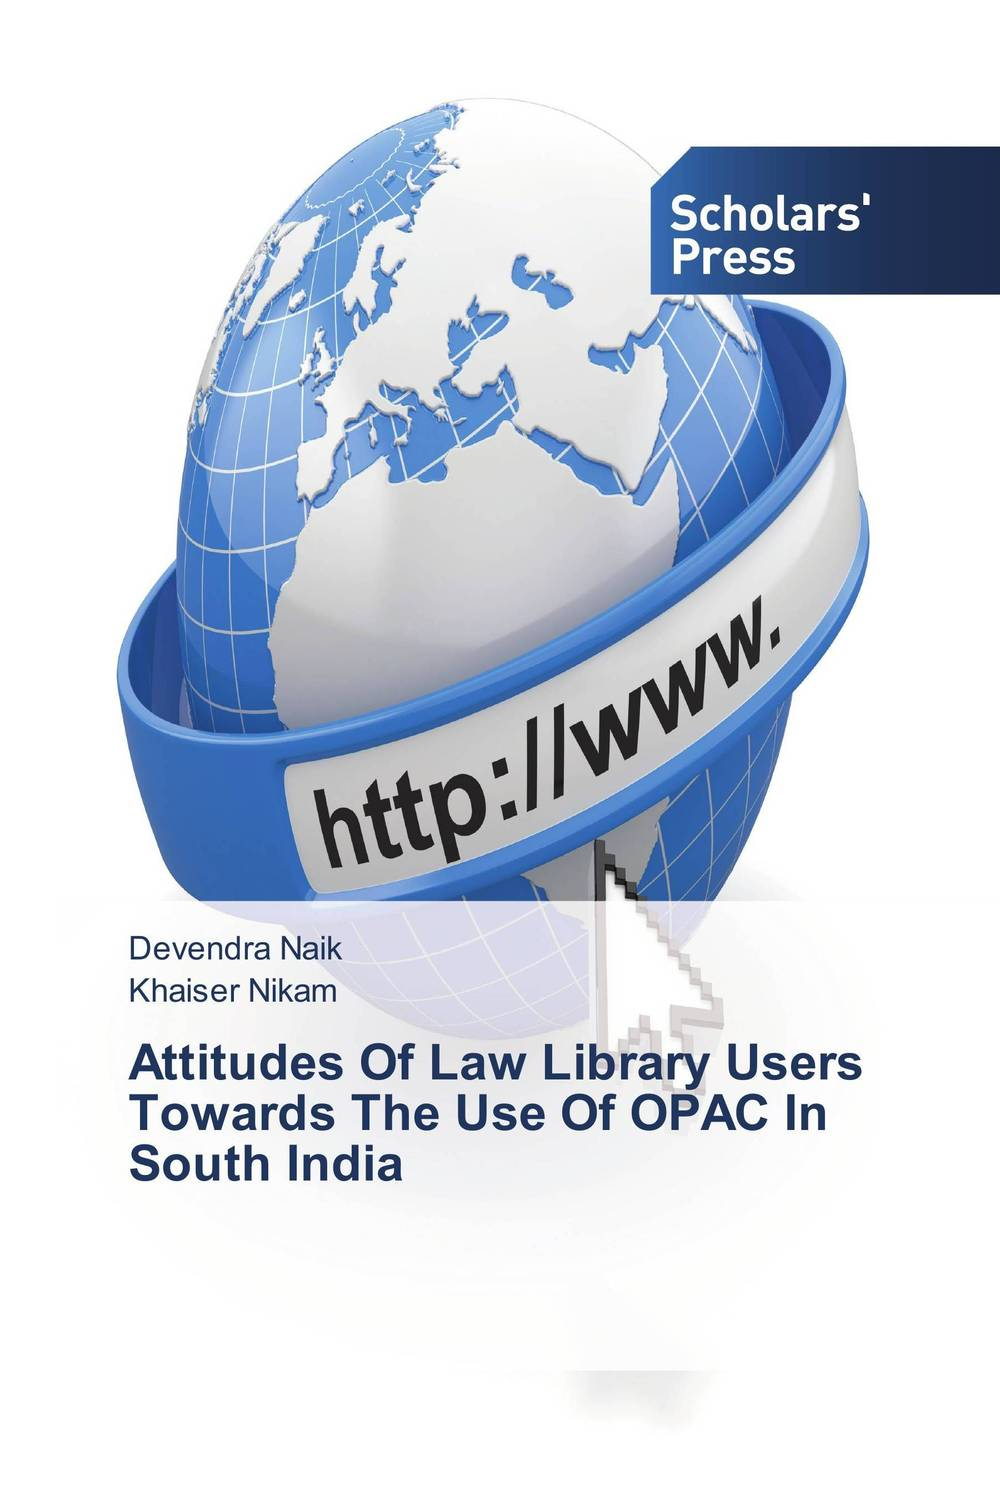 Attitudes Of Law Library Users Towards The Use Of OPAC In South India charles e beveridge the papers of frederick law olmstead – slavery and the south 1852–1857 v 2